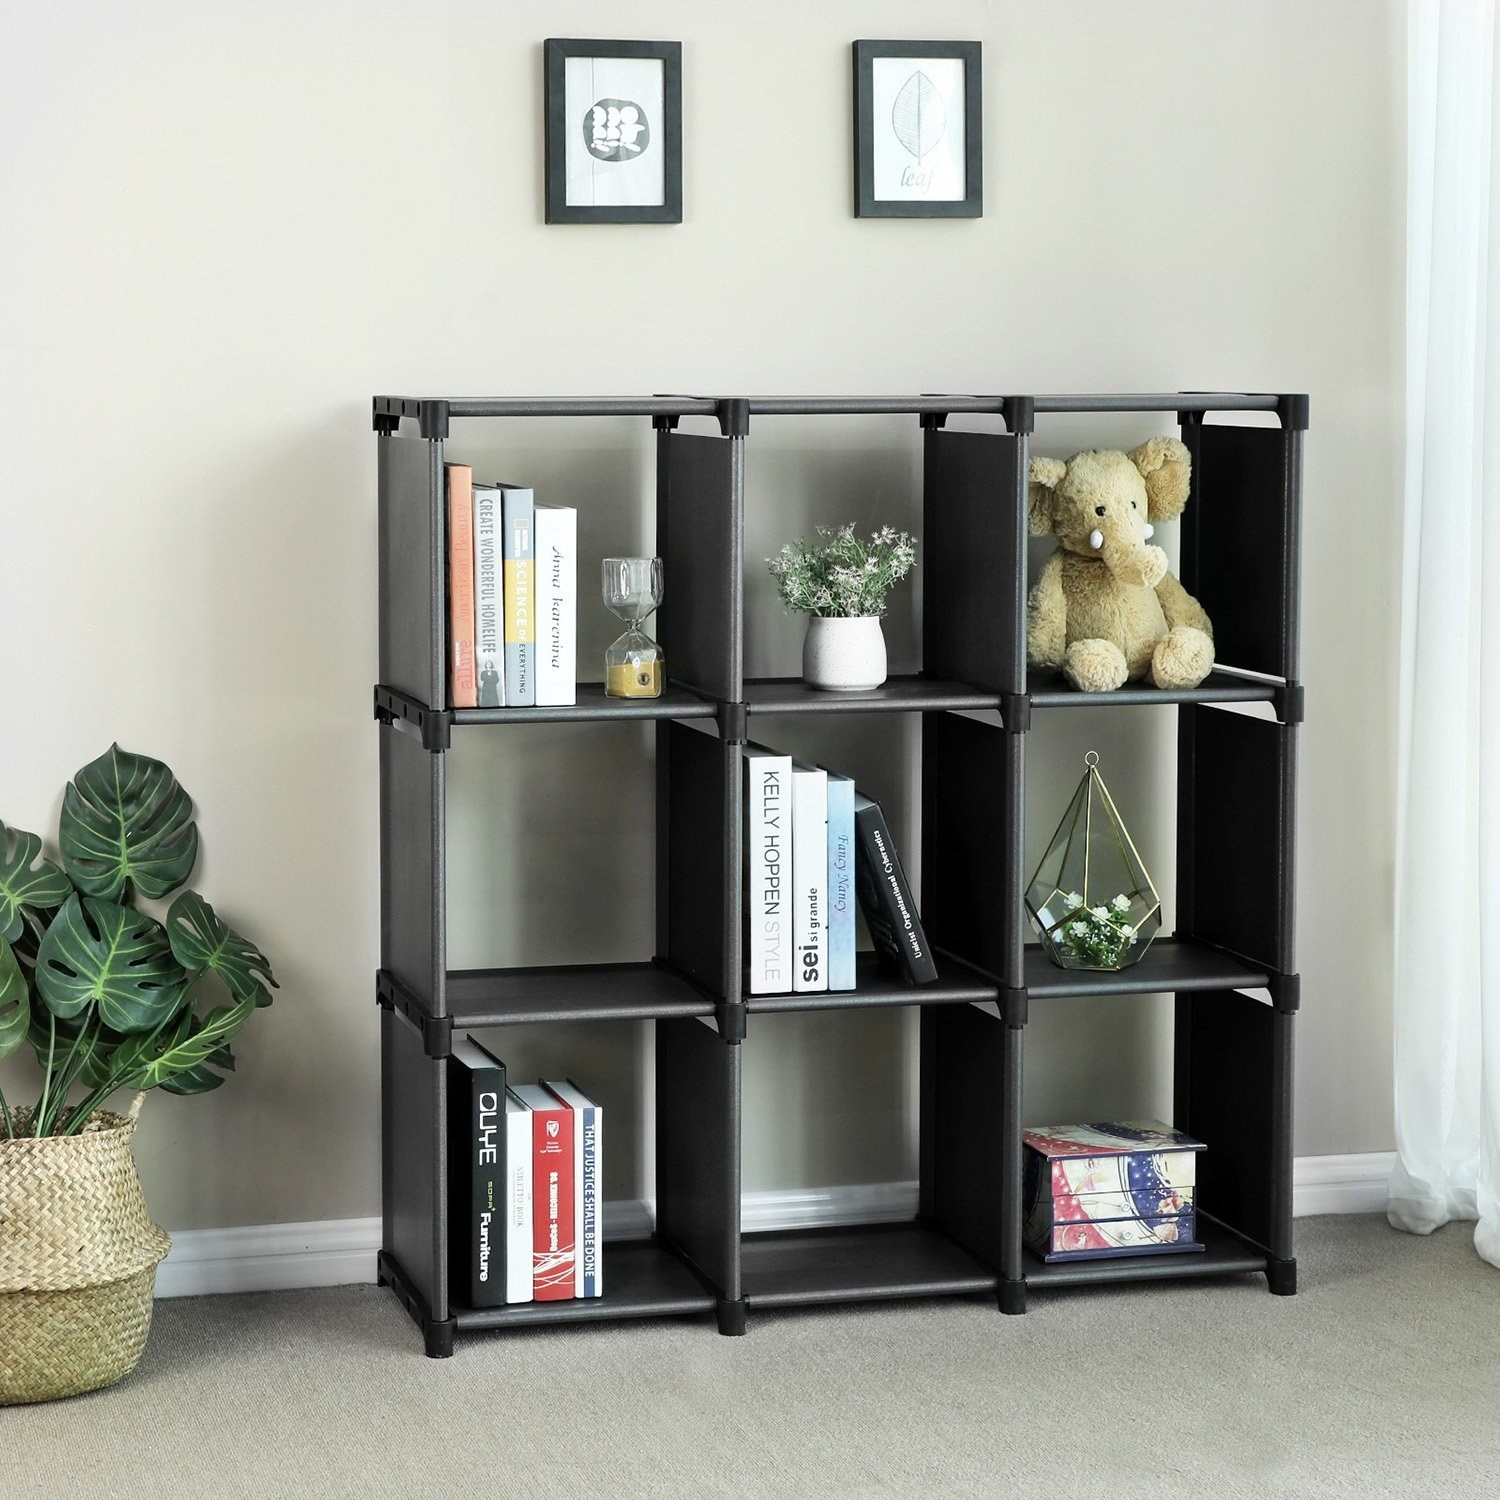 A storage shelf with nine compartments filled with books and plants